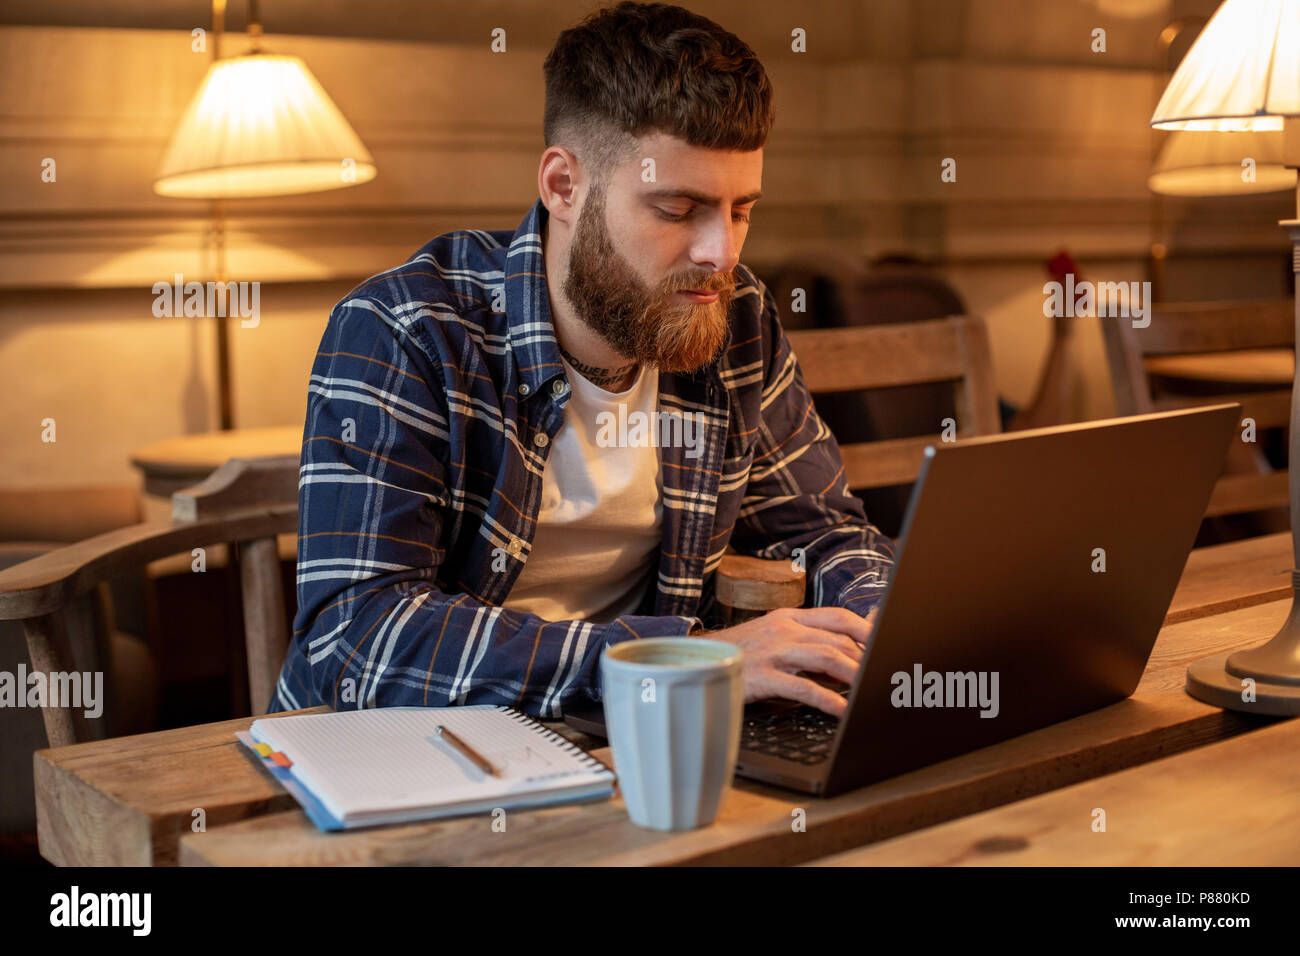 Young professional surfing the Internet on his laptop in a cafe Stock Photo